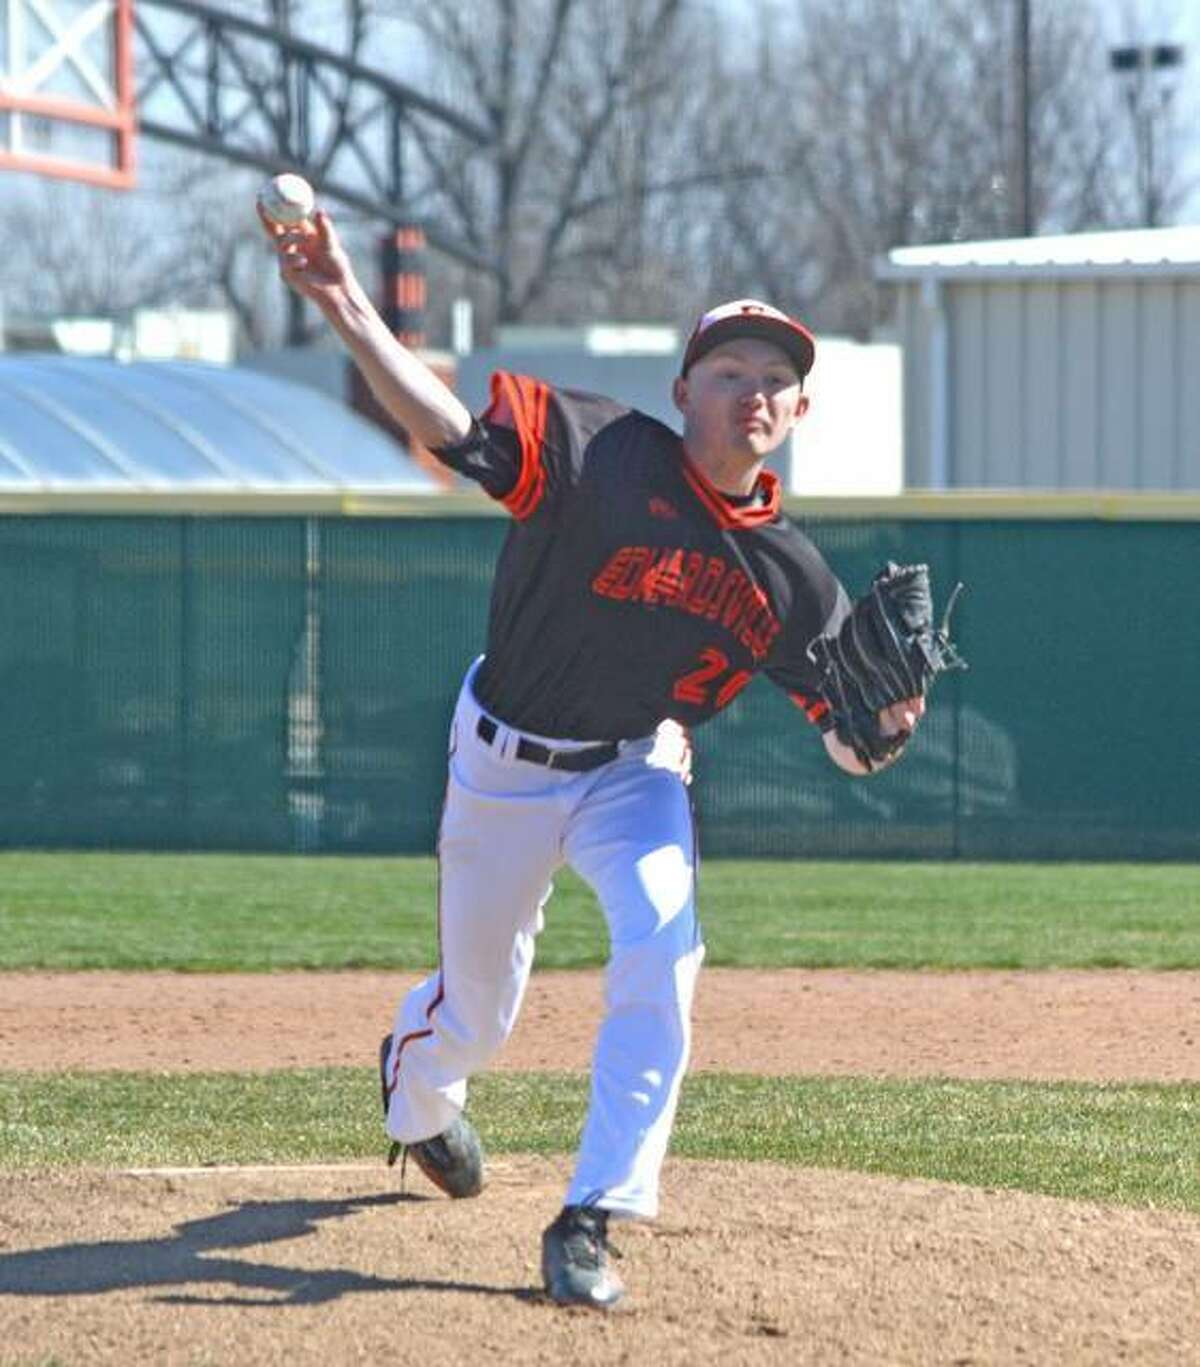 In this file photo, Andrew Yancik fires home a pitch for the Edwardsville Tigers.